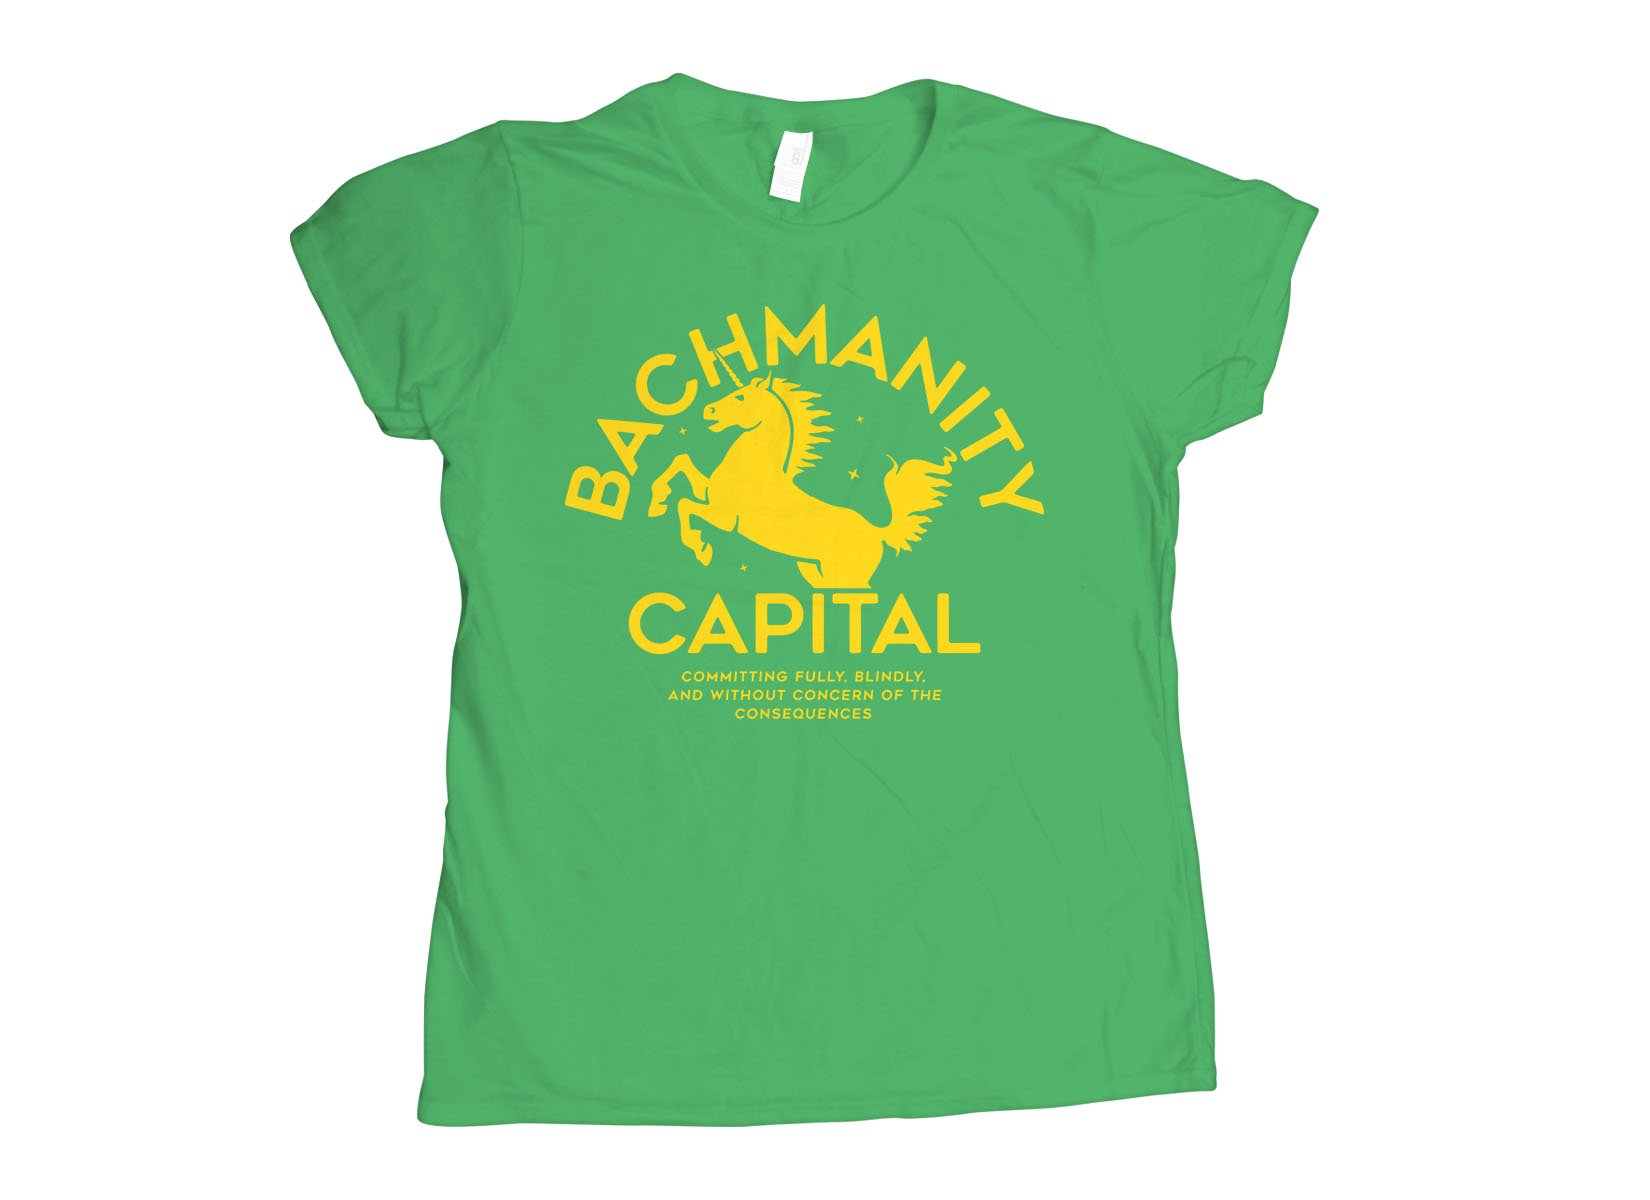 Bachmanity Capital on Womens T-Shirt